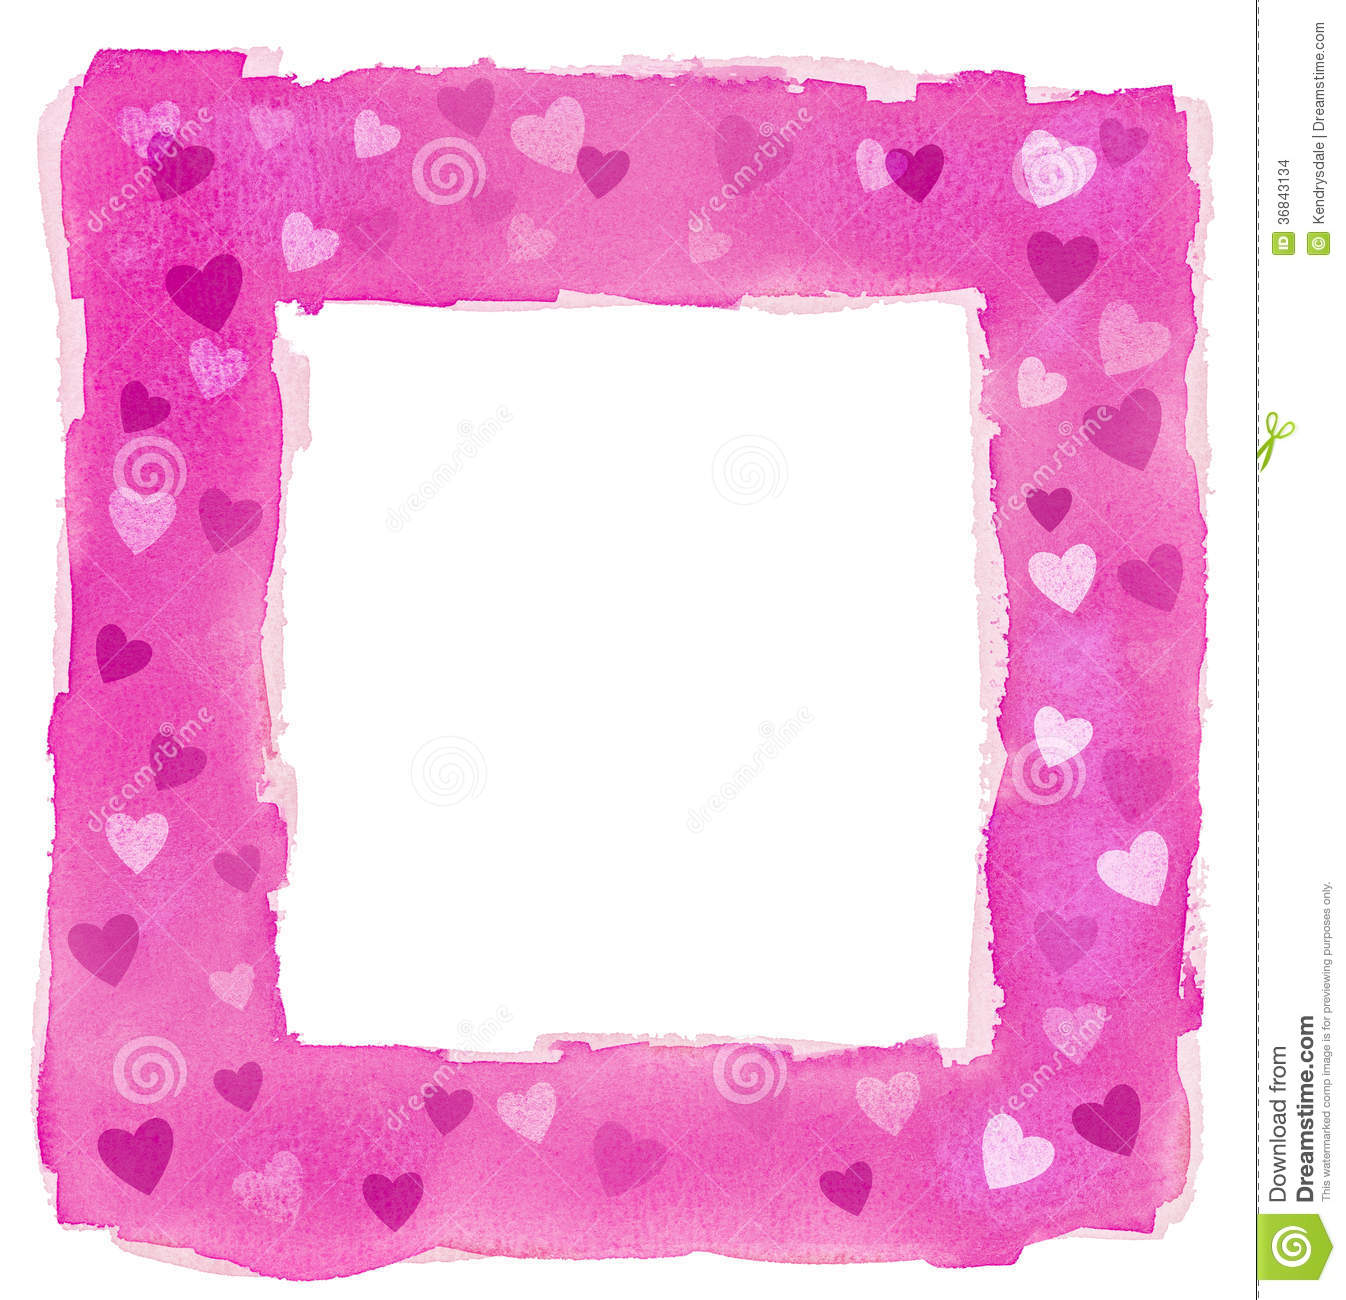 Abstract Pink Watercolor Hearts Square Frame Border Stock ...